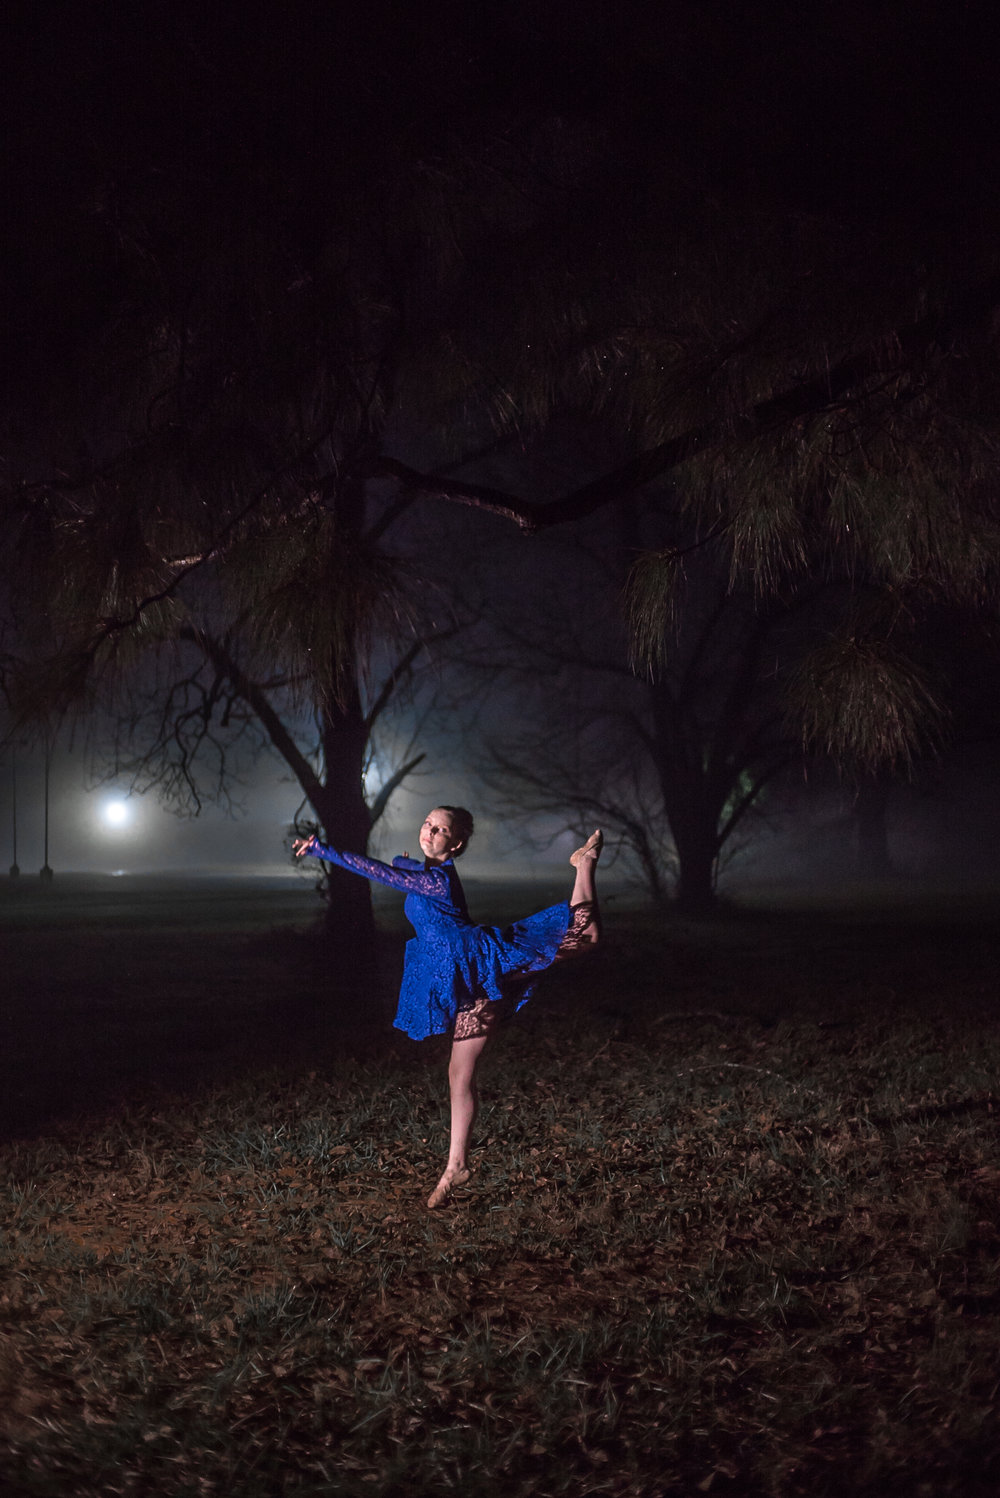 Boone asheville ballet dance photography